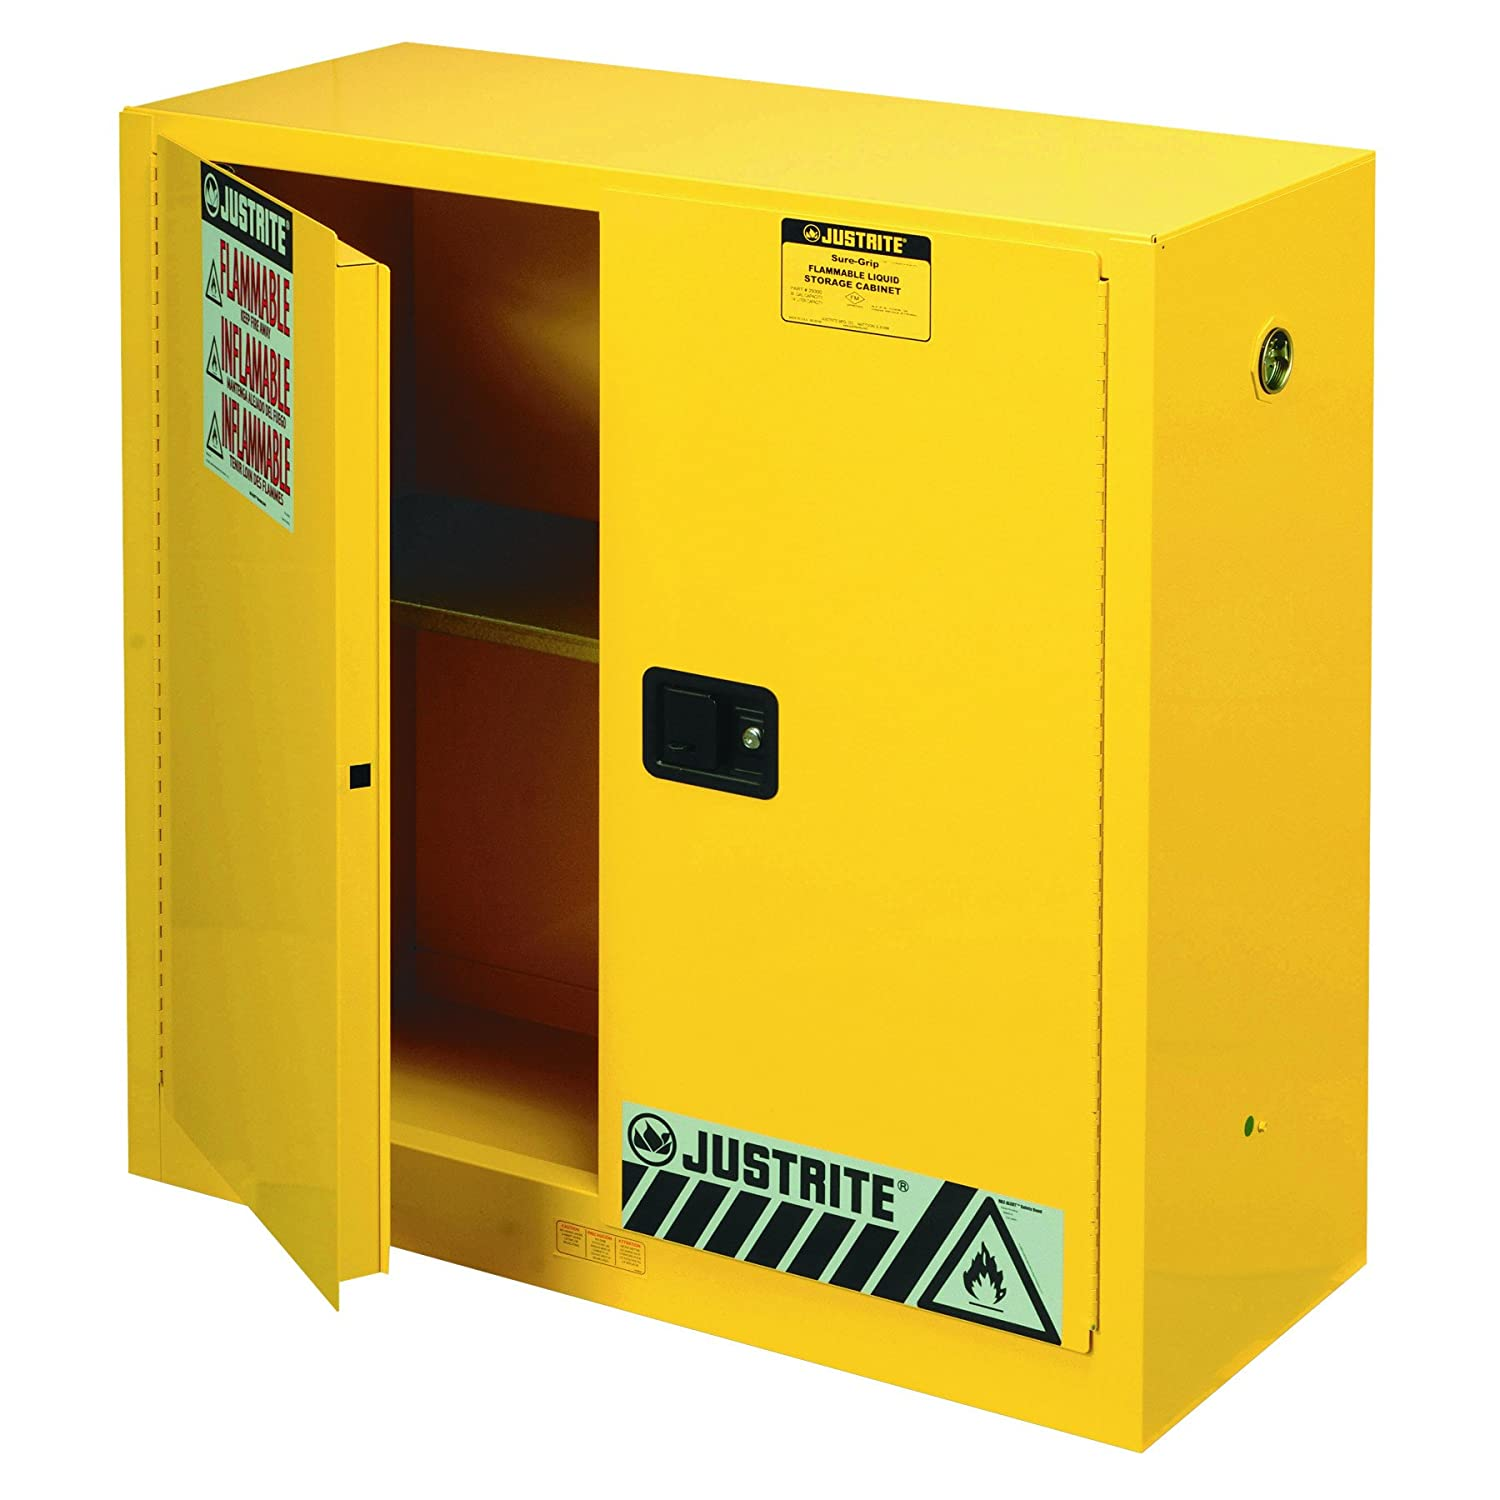 B001E1PF18 Justrite 893000 Sure-Grip EX Flammable Safety Cabinet, 2 Door, Manual Close, Dimensions (H x W x D): 44 x 43 x 18 inch (1118 x 1092 x 457 mm); 30 gal. (114L) 71sSCNSI40L._SL1500_